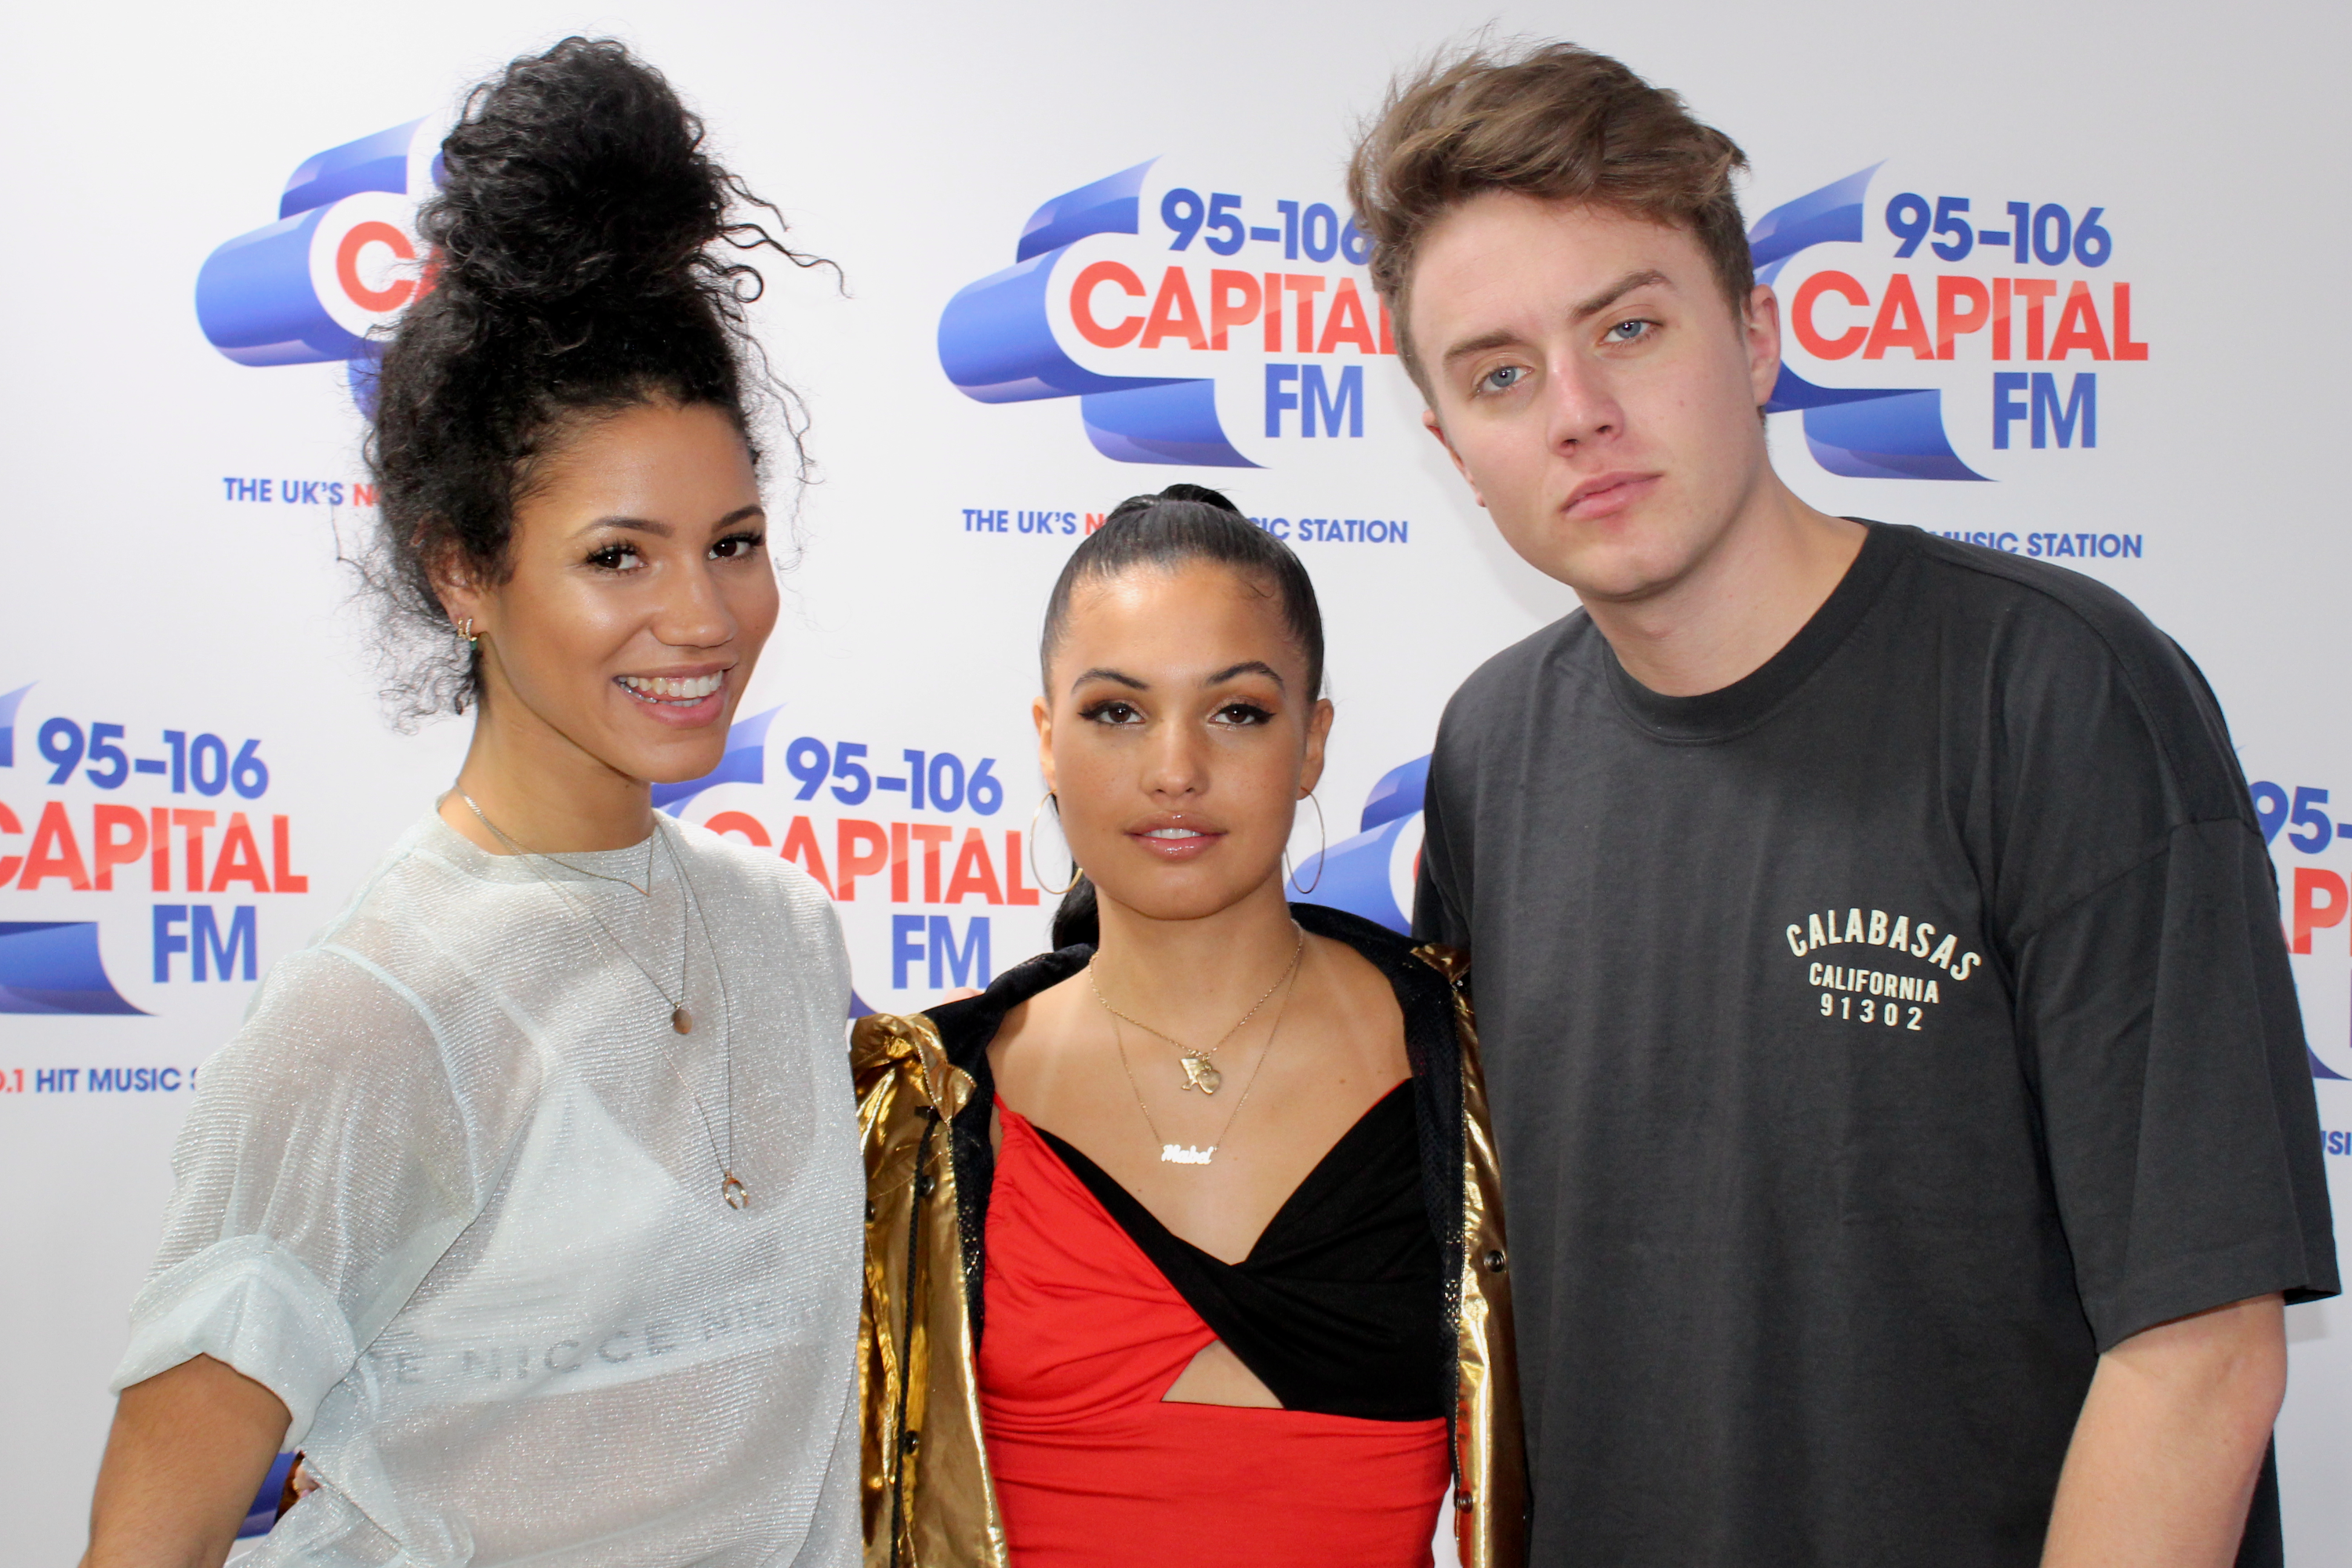 Mabel on Capital Breakfast w/ Roman Kemp and Vick Hope